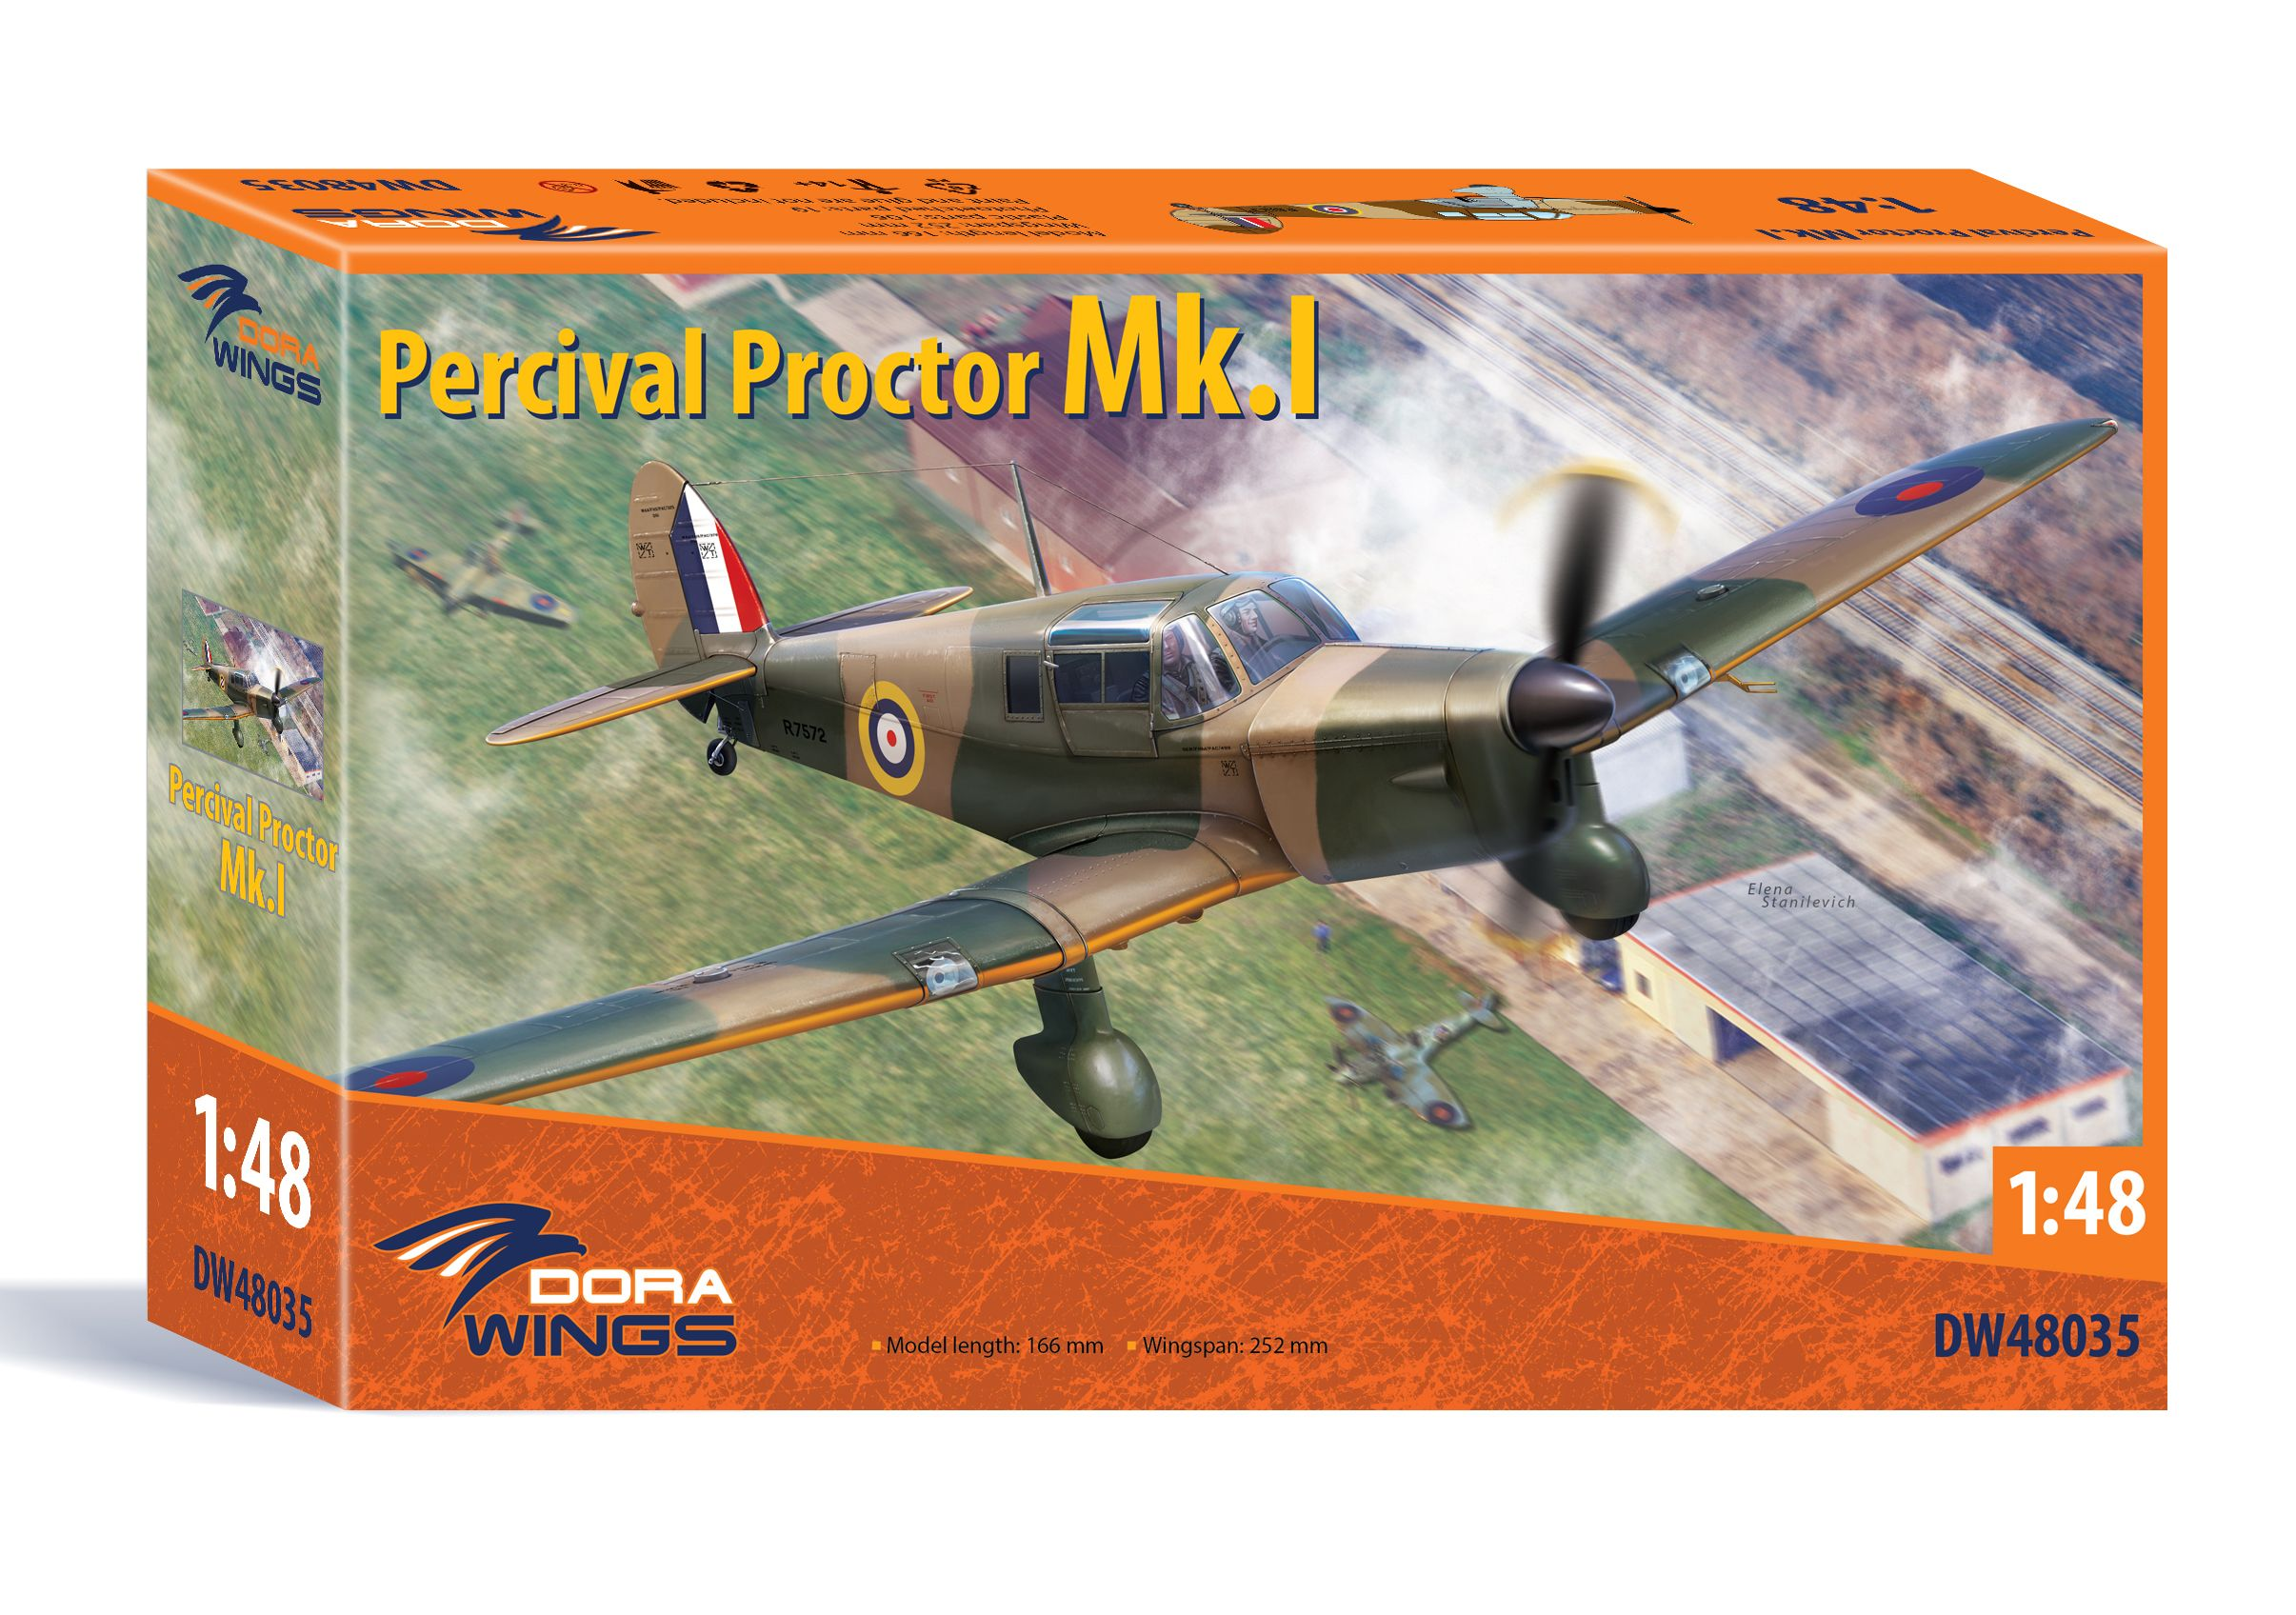 Dora Wings Percival Proctor Mk.I